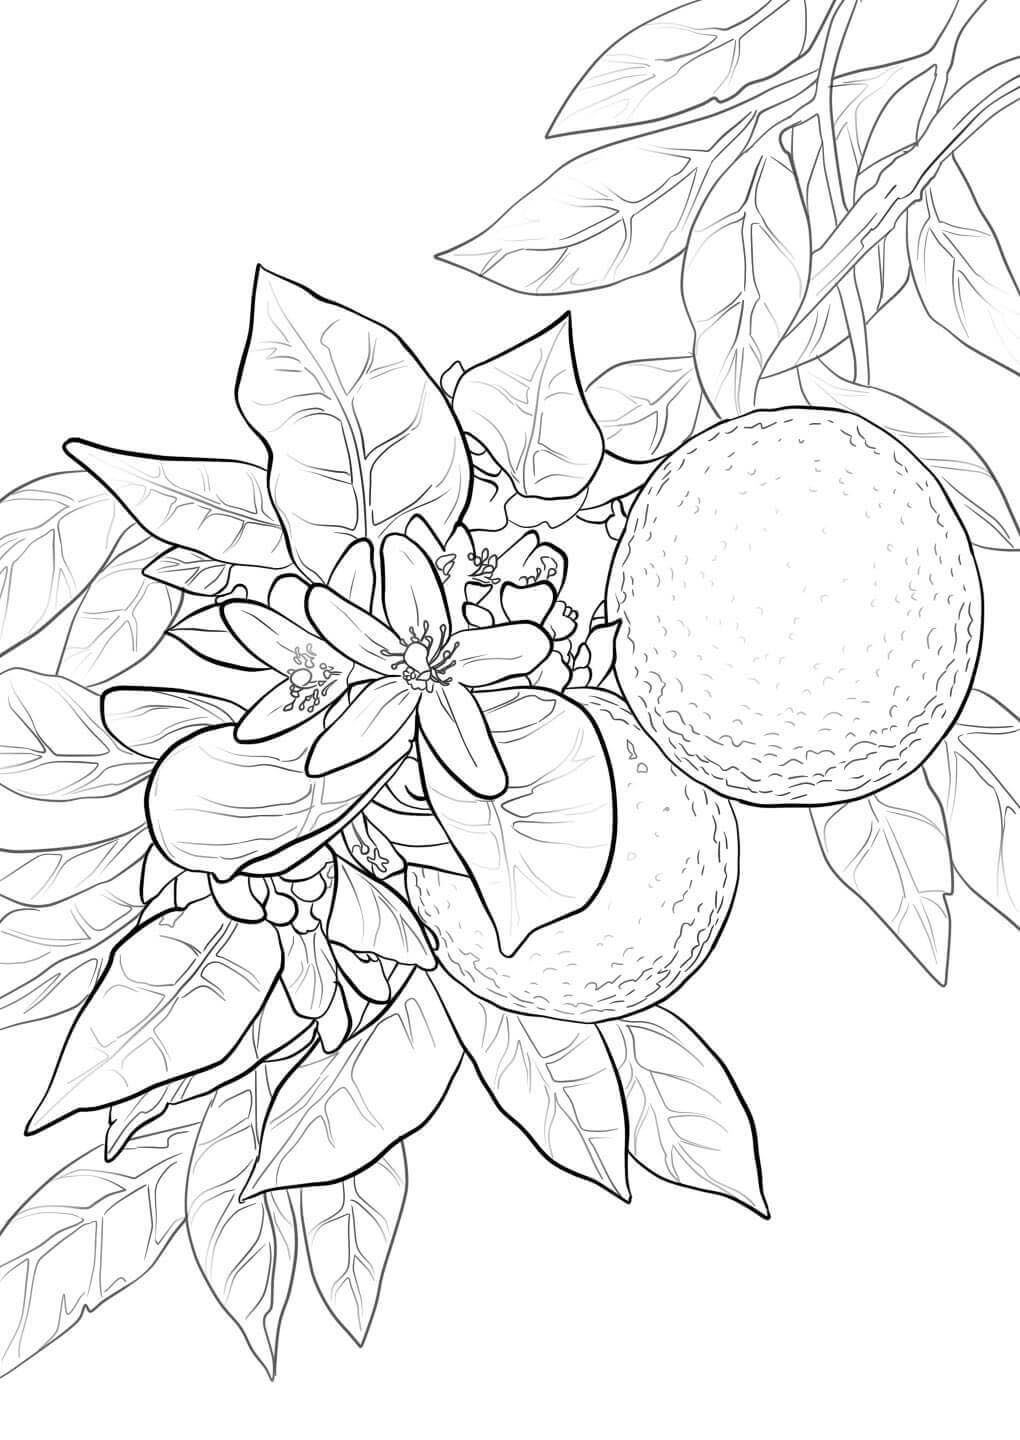 Orange coloring pages to download and print for free